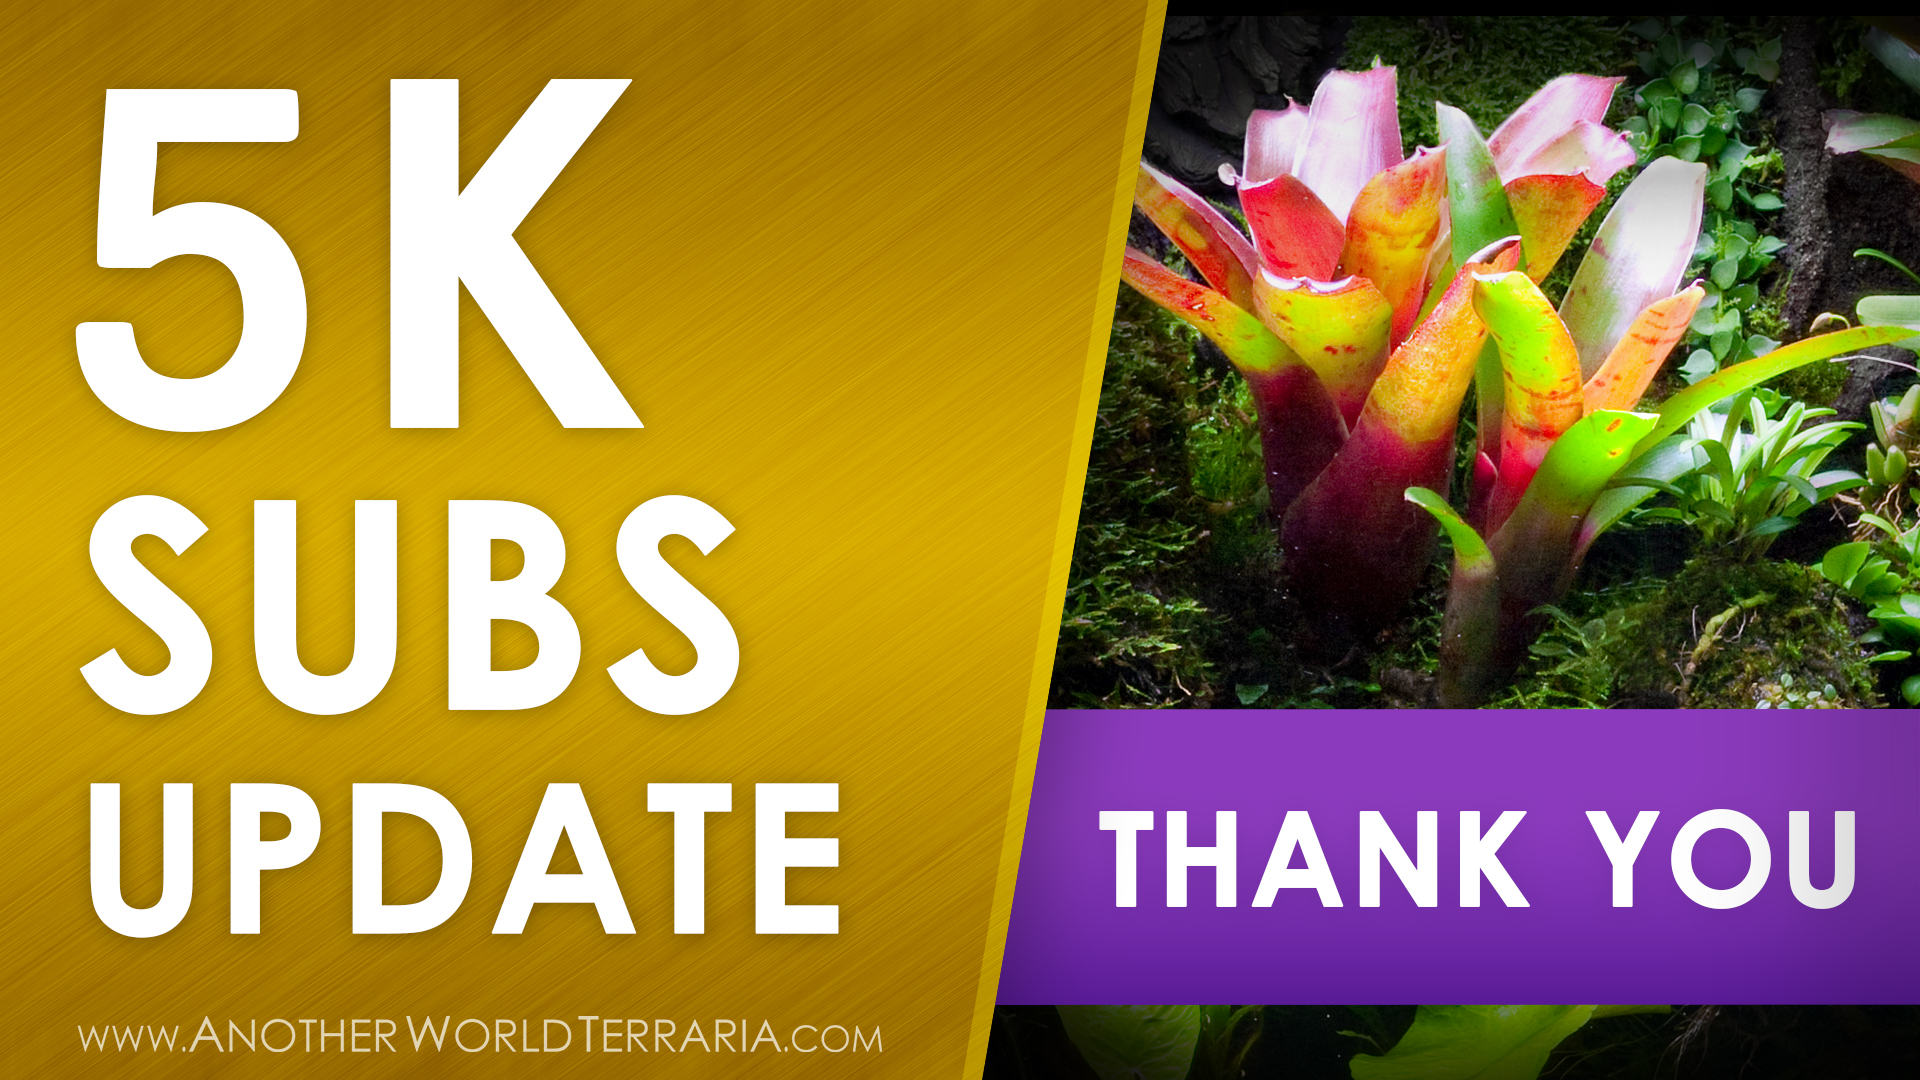 Another World Terraria 5K subscribers update